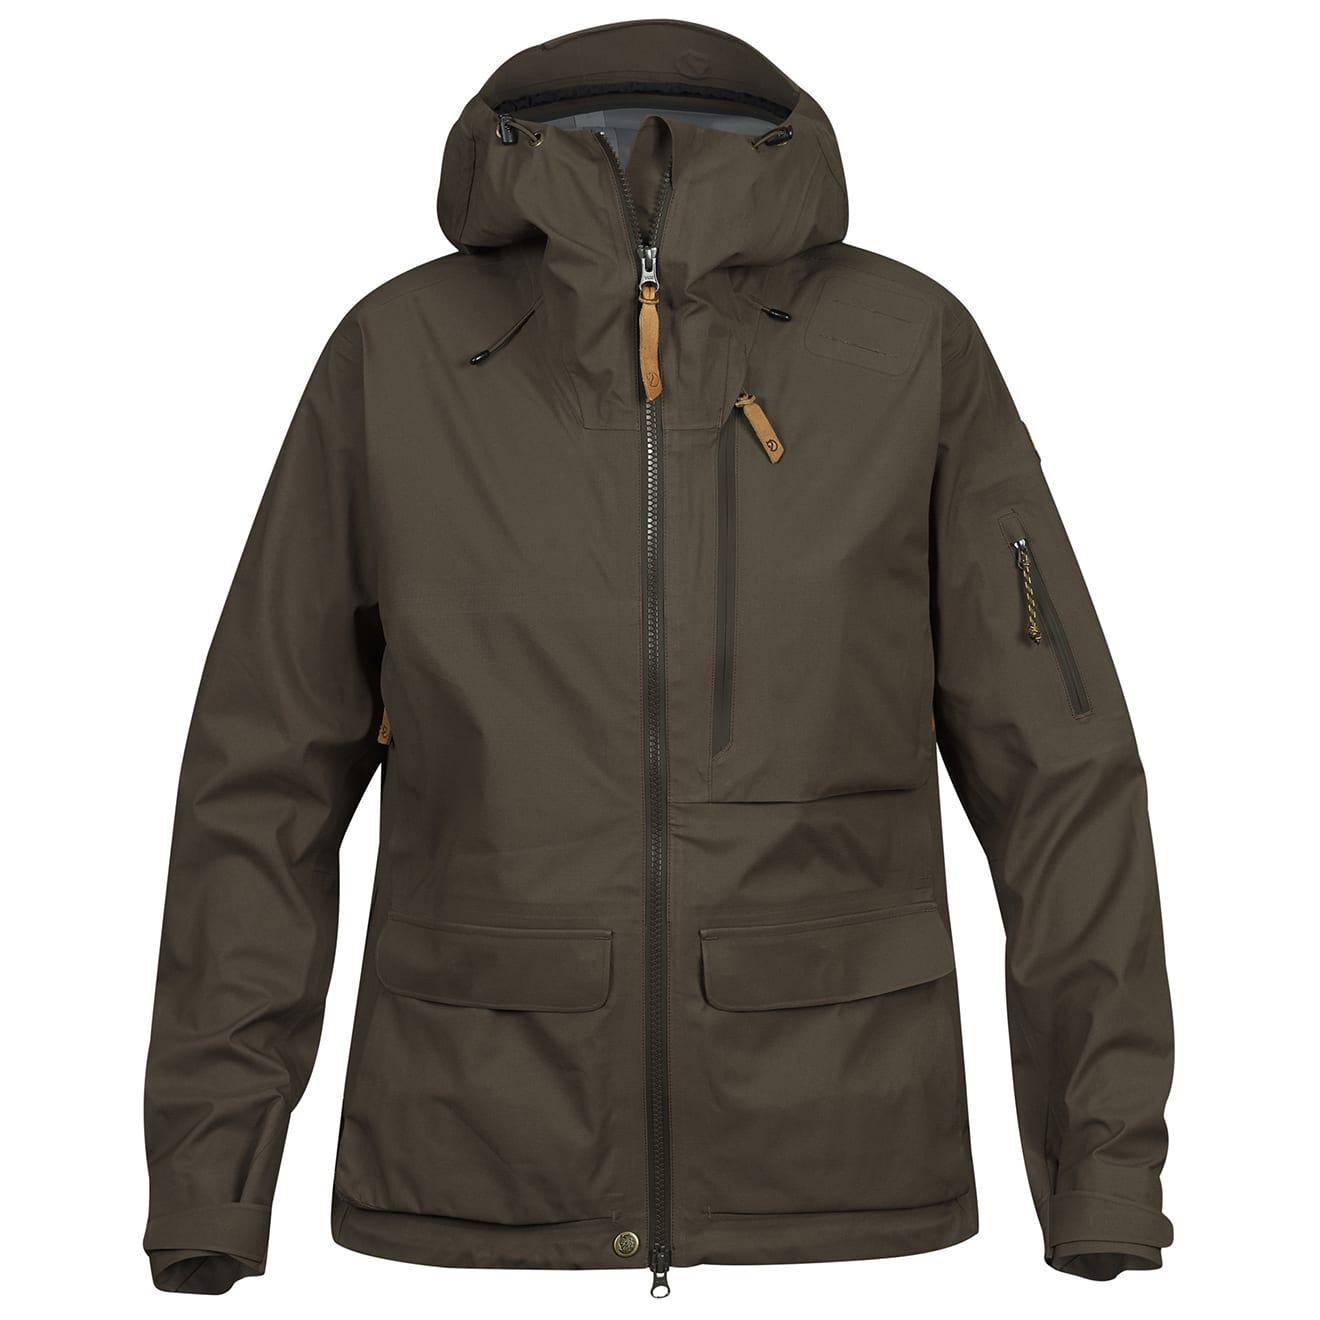 Fjallraven Lappland eco shell jacket womens dark olive